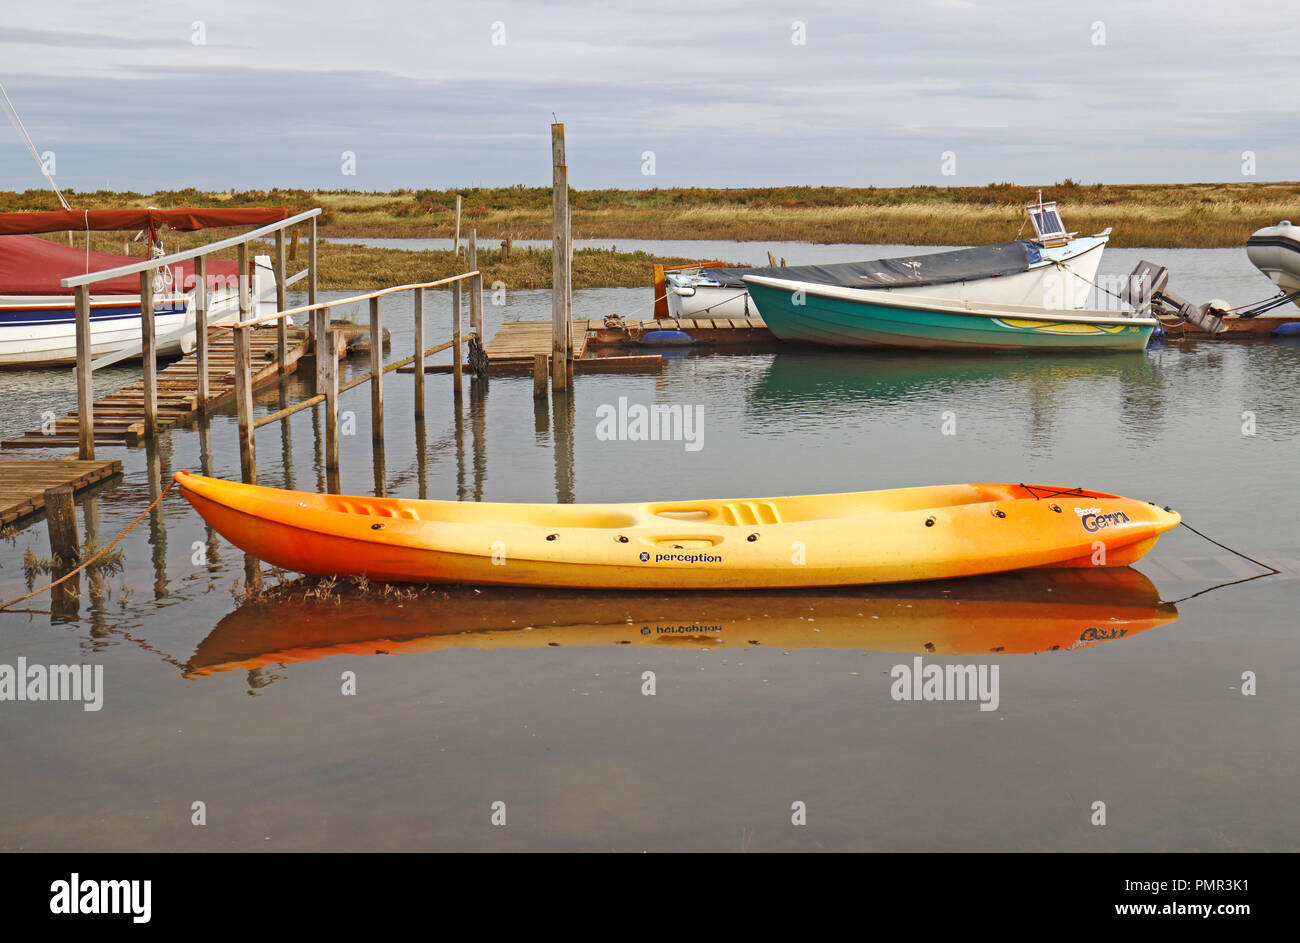 Perception Stock Photos & Perception Stock Images - Alamy